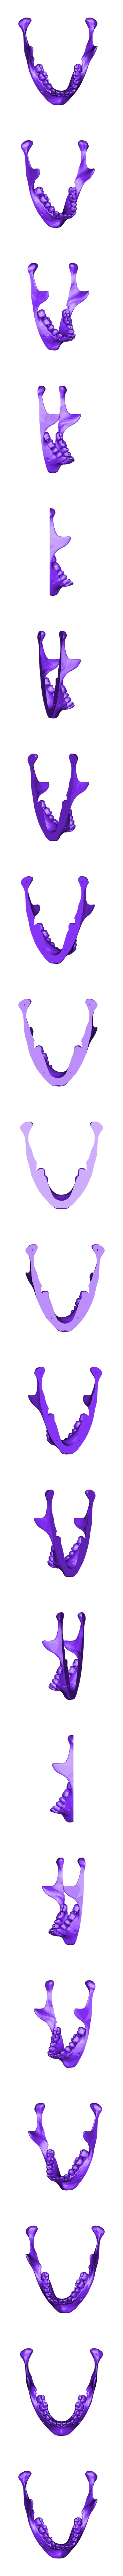 skull-jaw-top.stl Download free STL file Human skull, anatomically correct - for smaller printers • 3D printer template, firebird